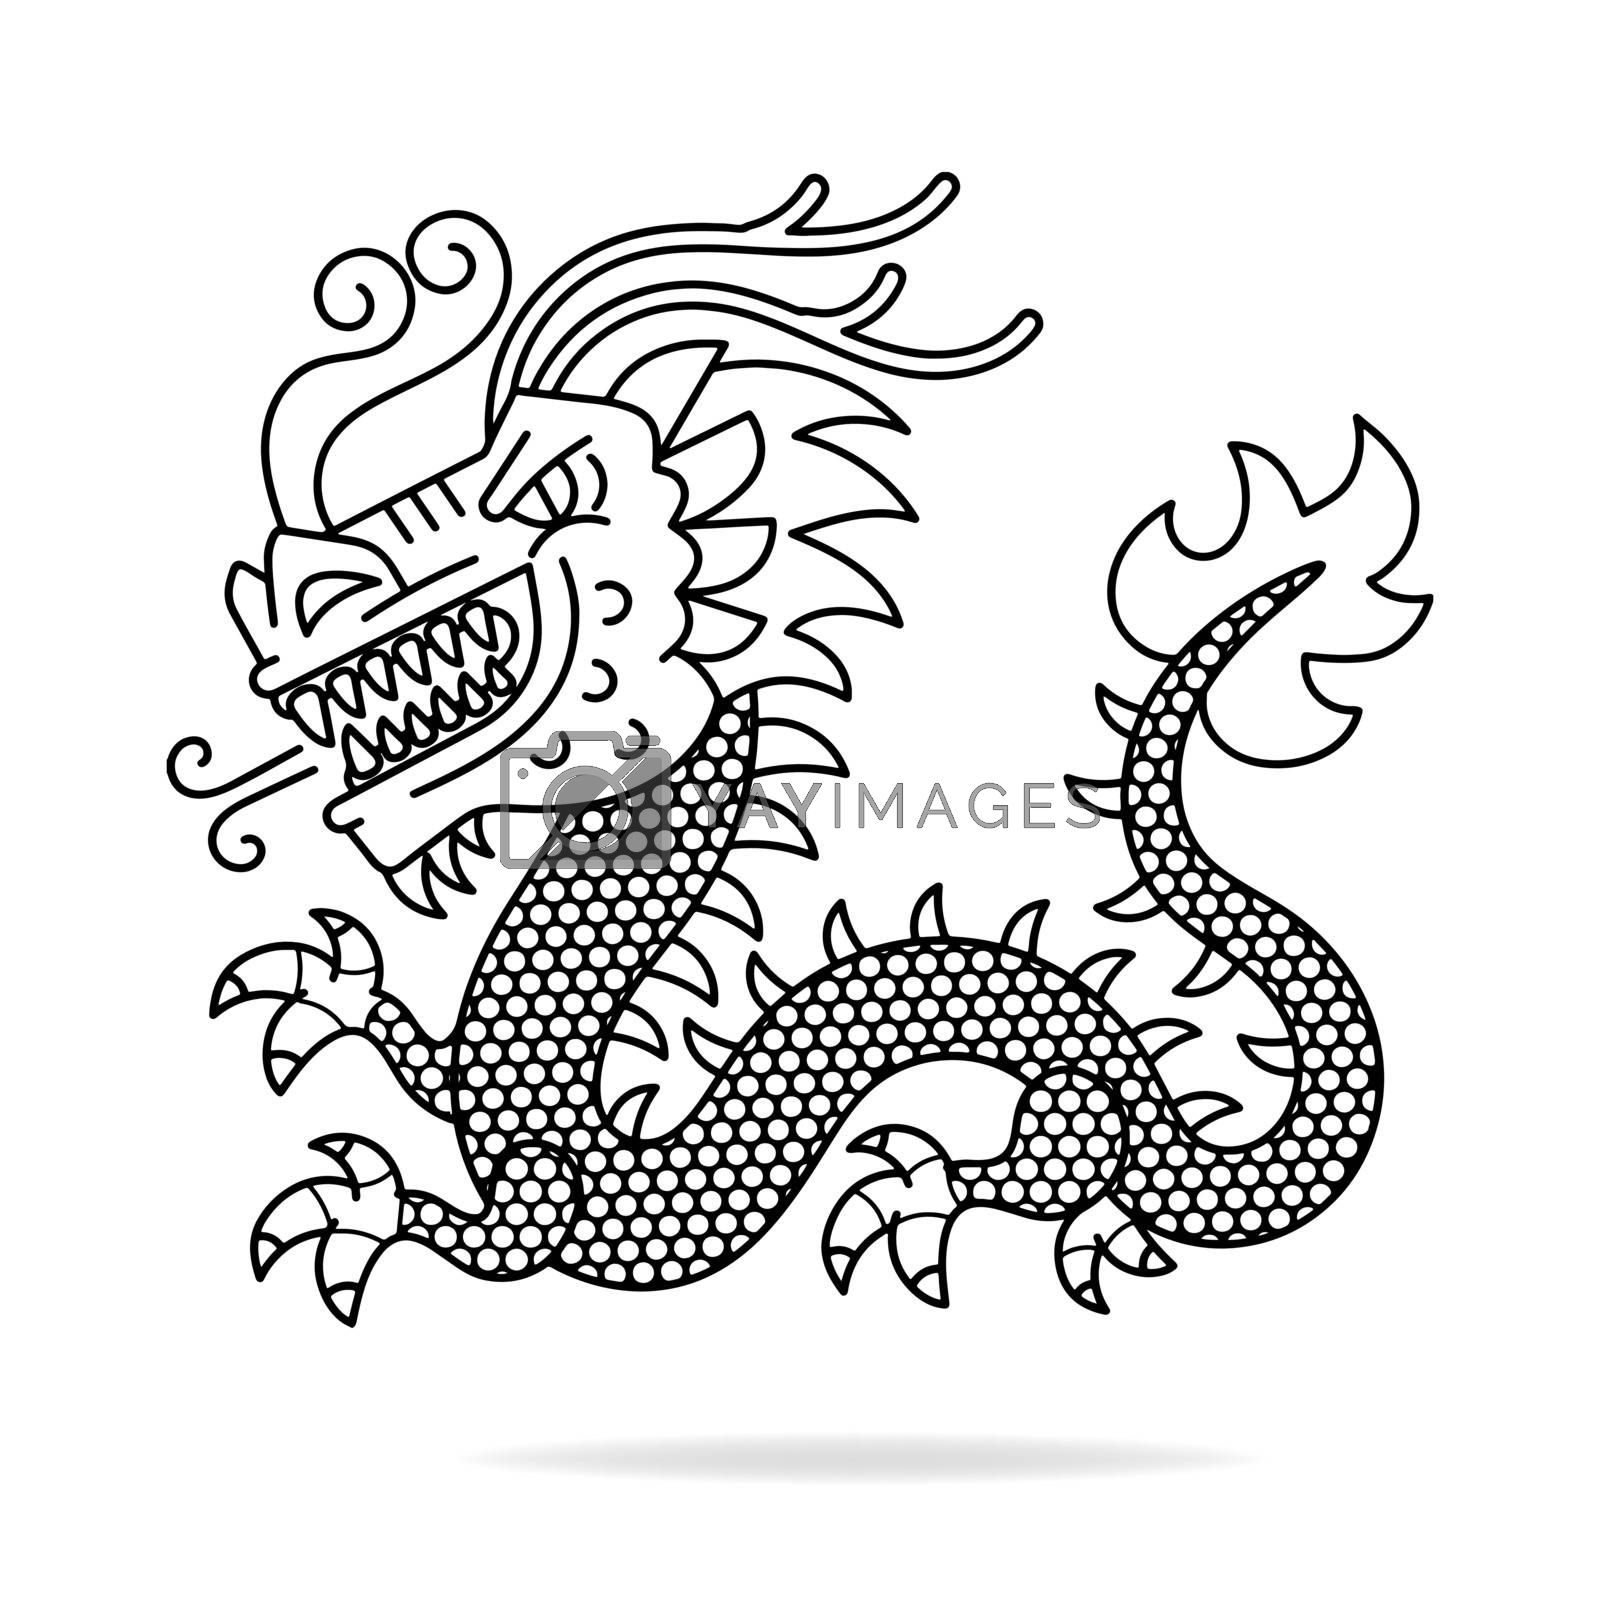 Vector of Chinese Ancient Dragon Vector Illustration Suitable For Greeting Card, Poster Or T-shirt Printing.